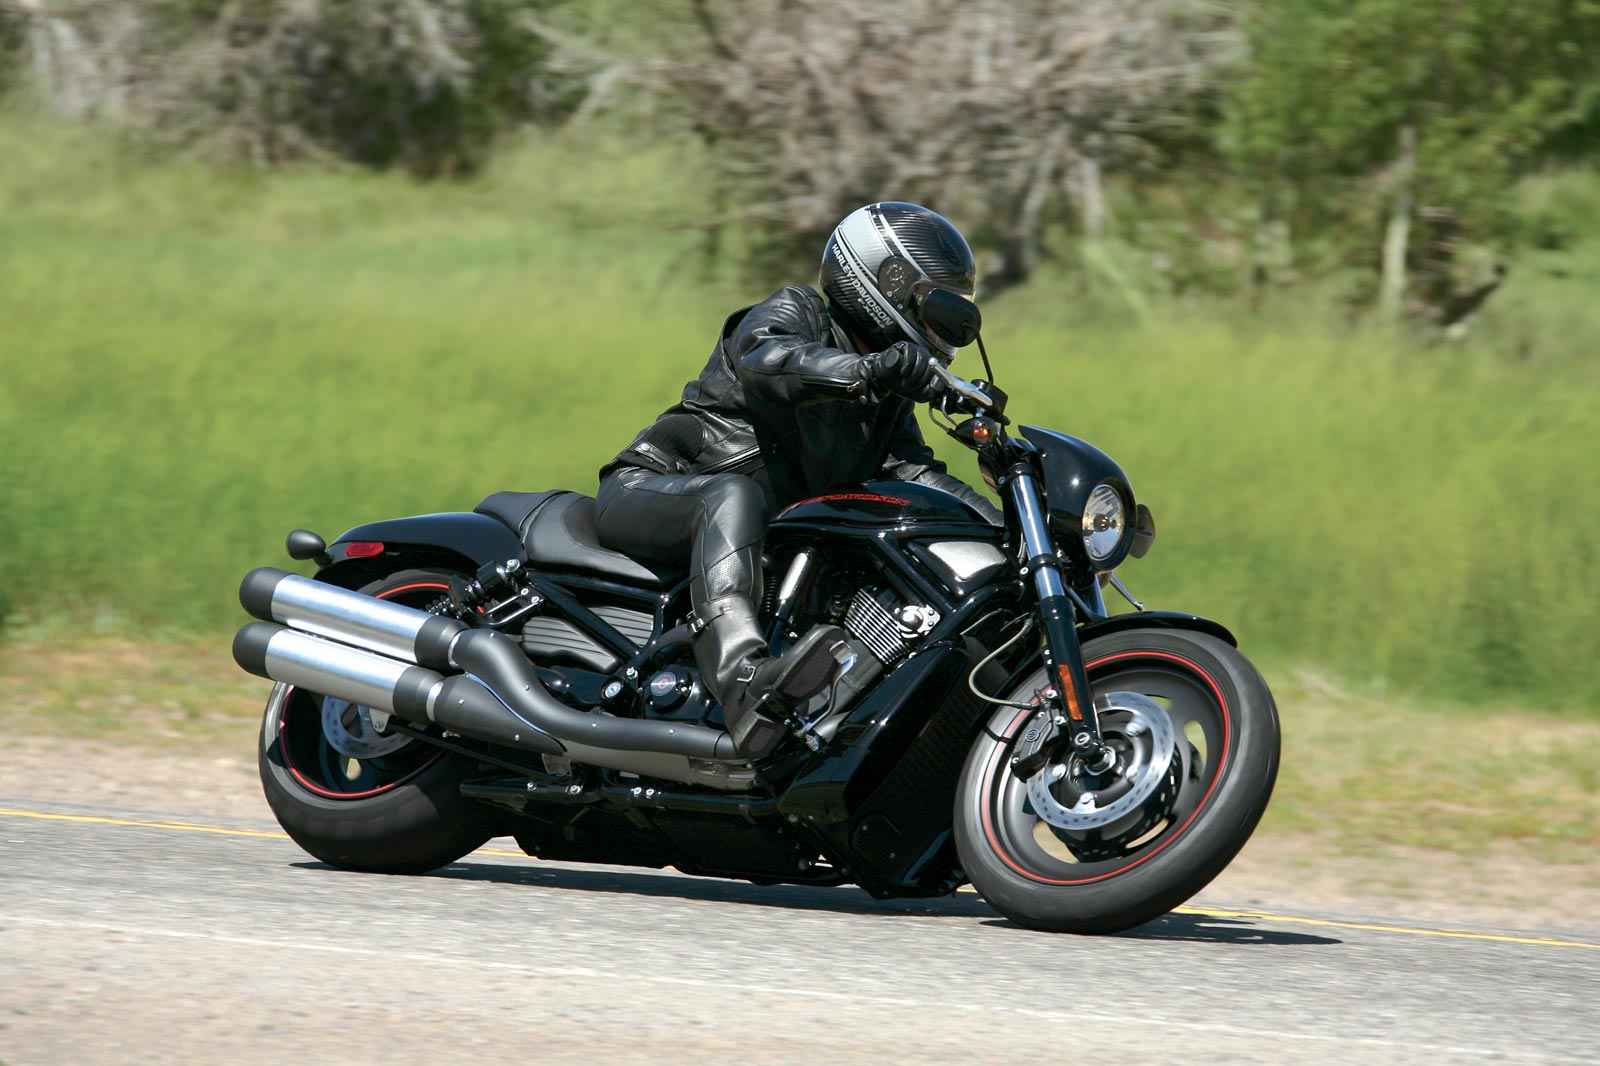 Harley-davidson vrscdx photo - 1